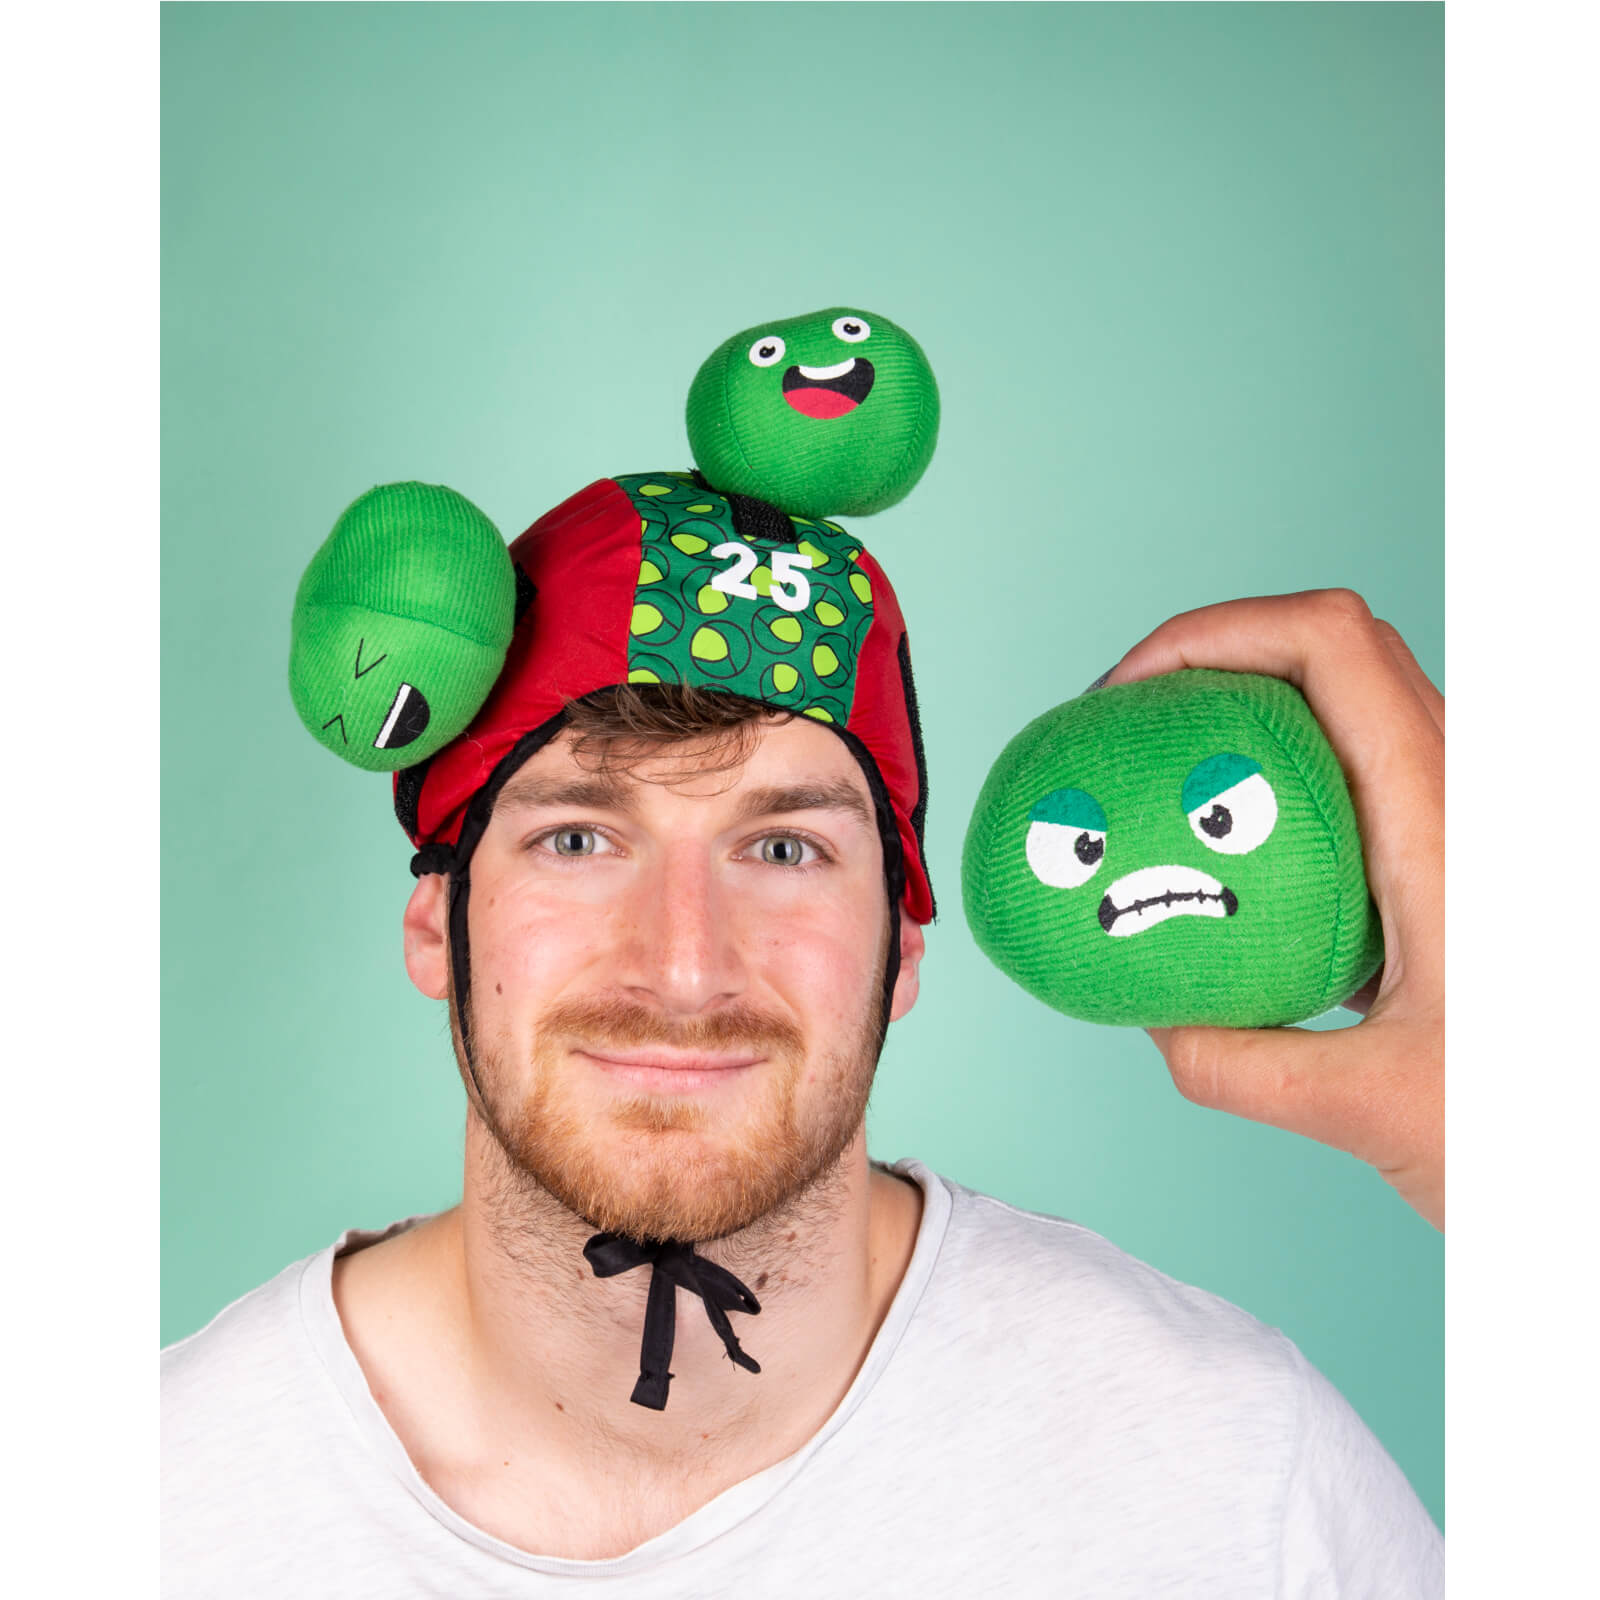 Image of Sprouts Head Toss Game